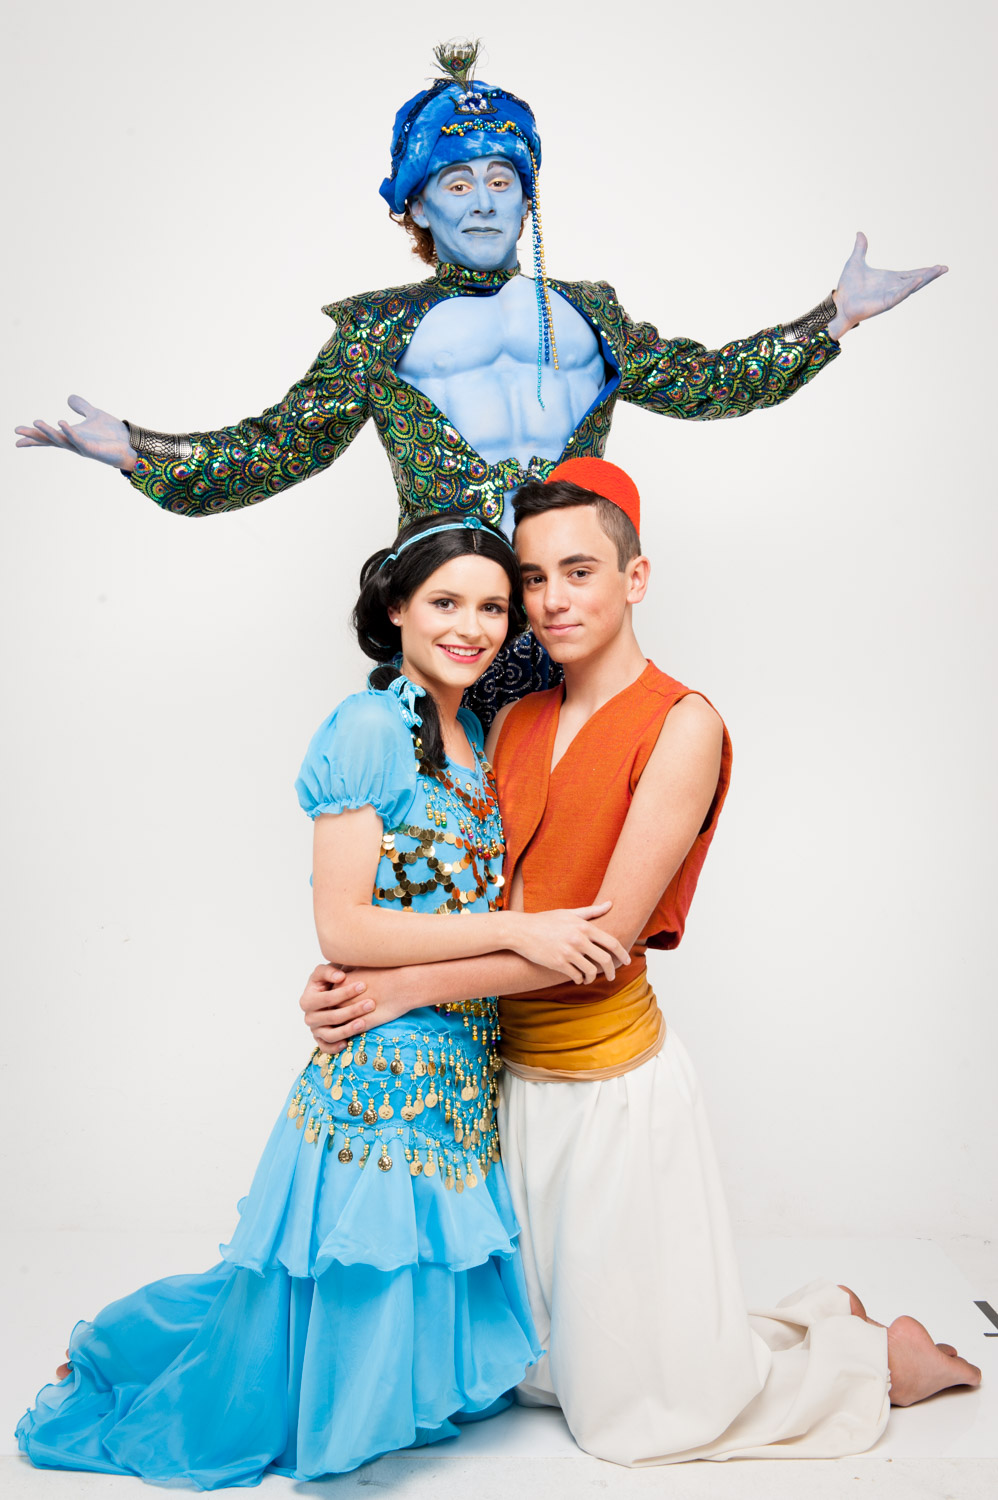 A1462_JDHS_1823  sc 1 st  Zilla u0026 Brook & Disney Aladdin Jr. Live on Stage presented by the Young Australian ...